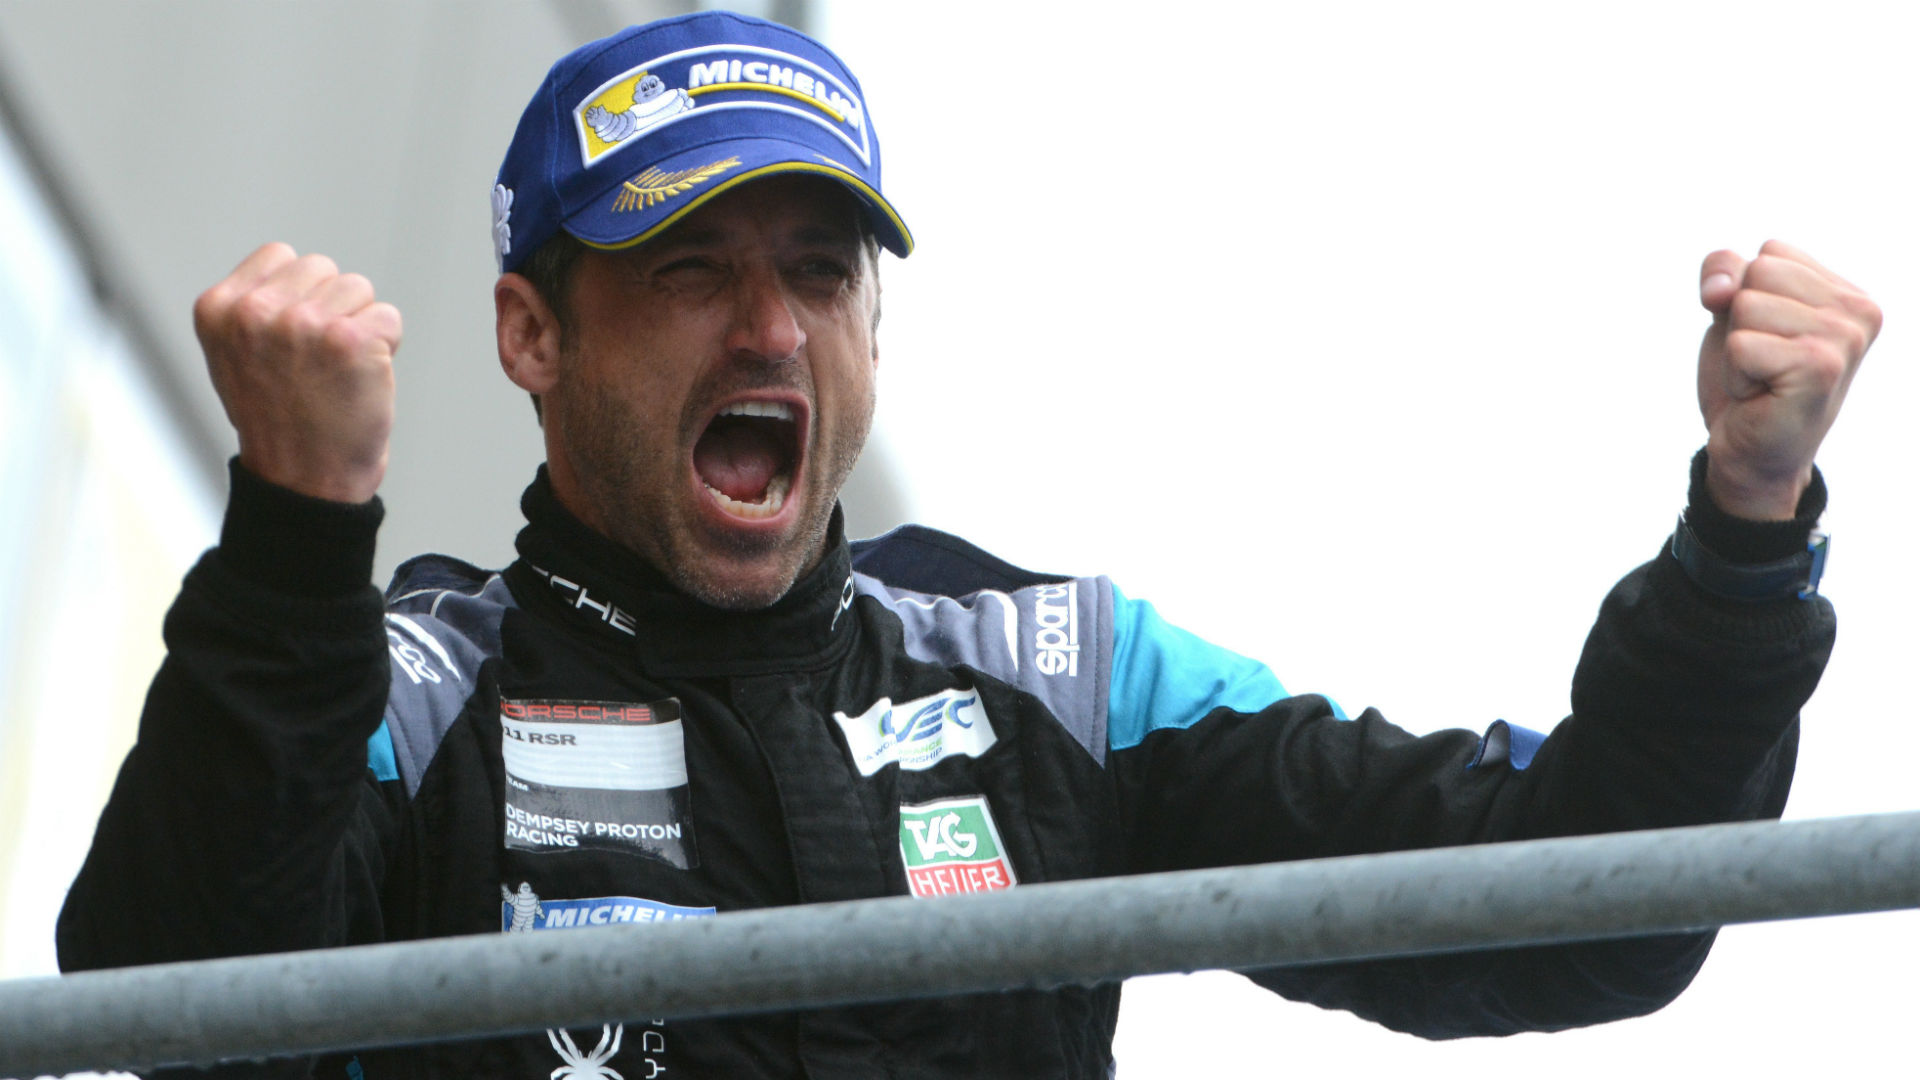 Patrick Dempsey Porsche Team Finish 2nd At 24 Hours Of Le Mans